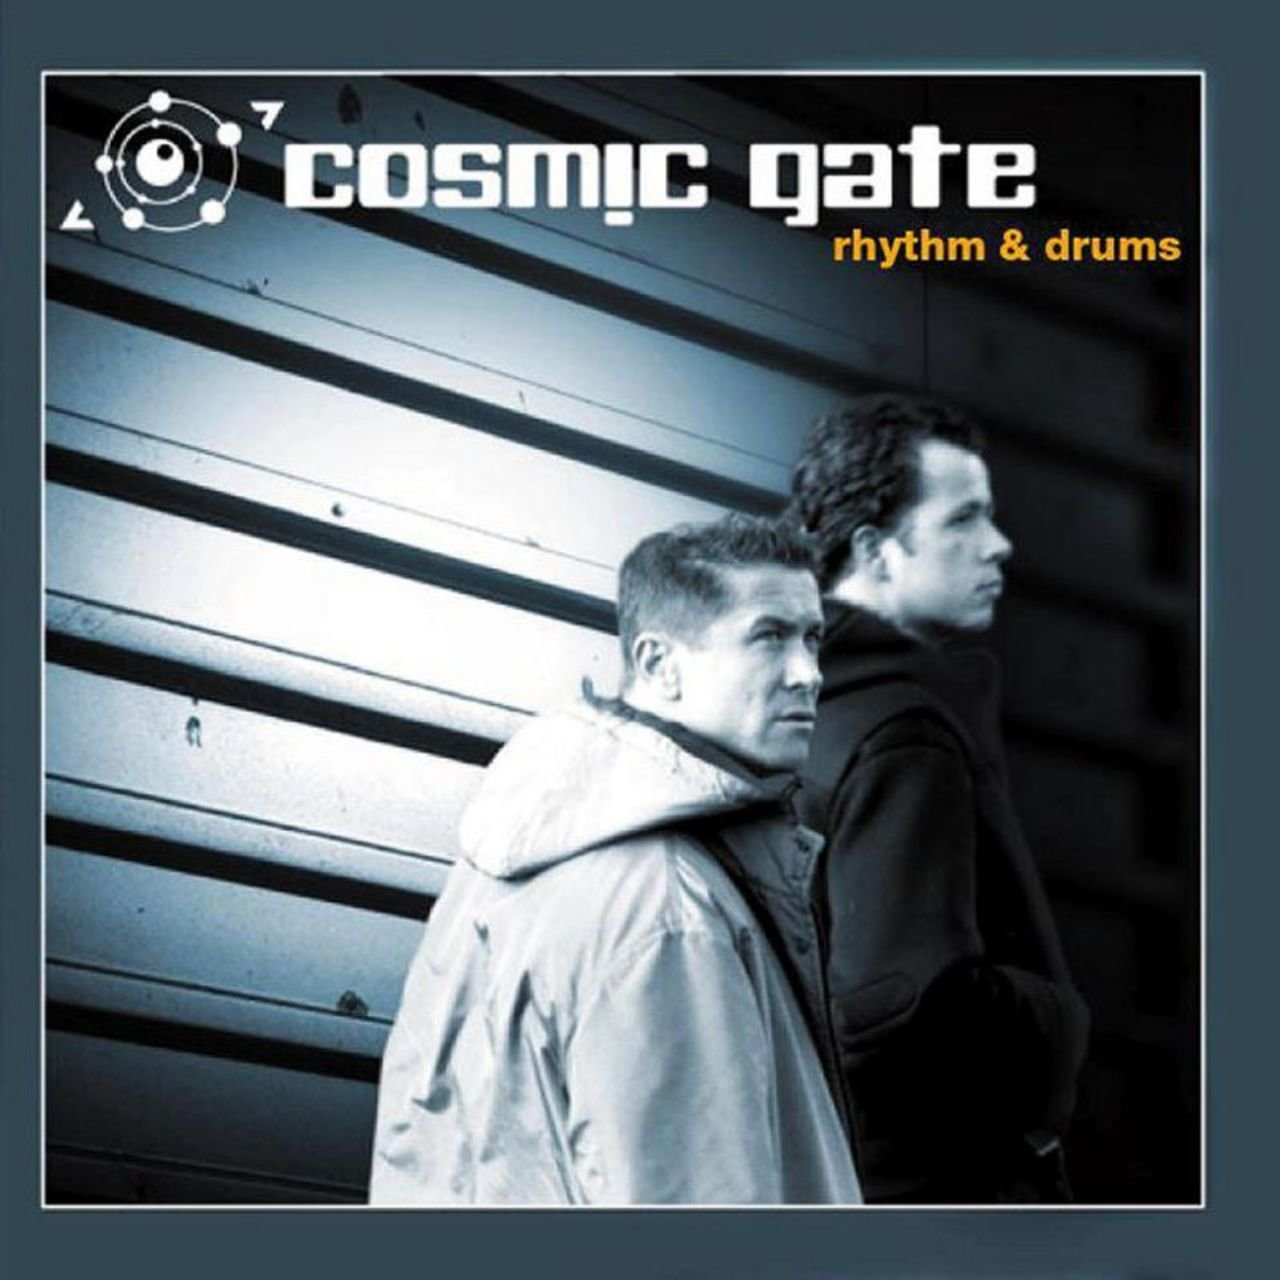 cosmic gate exploration of space cover - photo #6